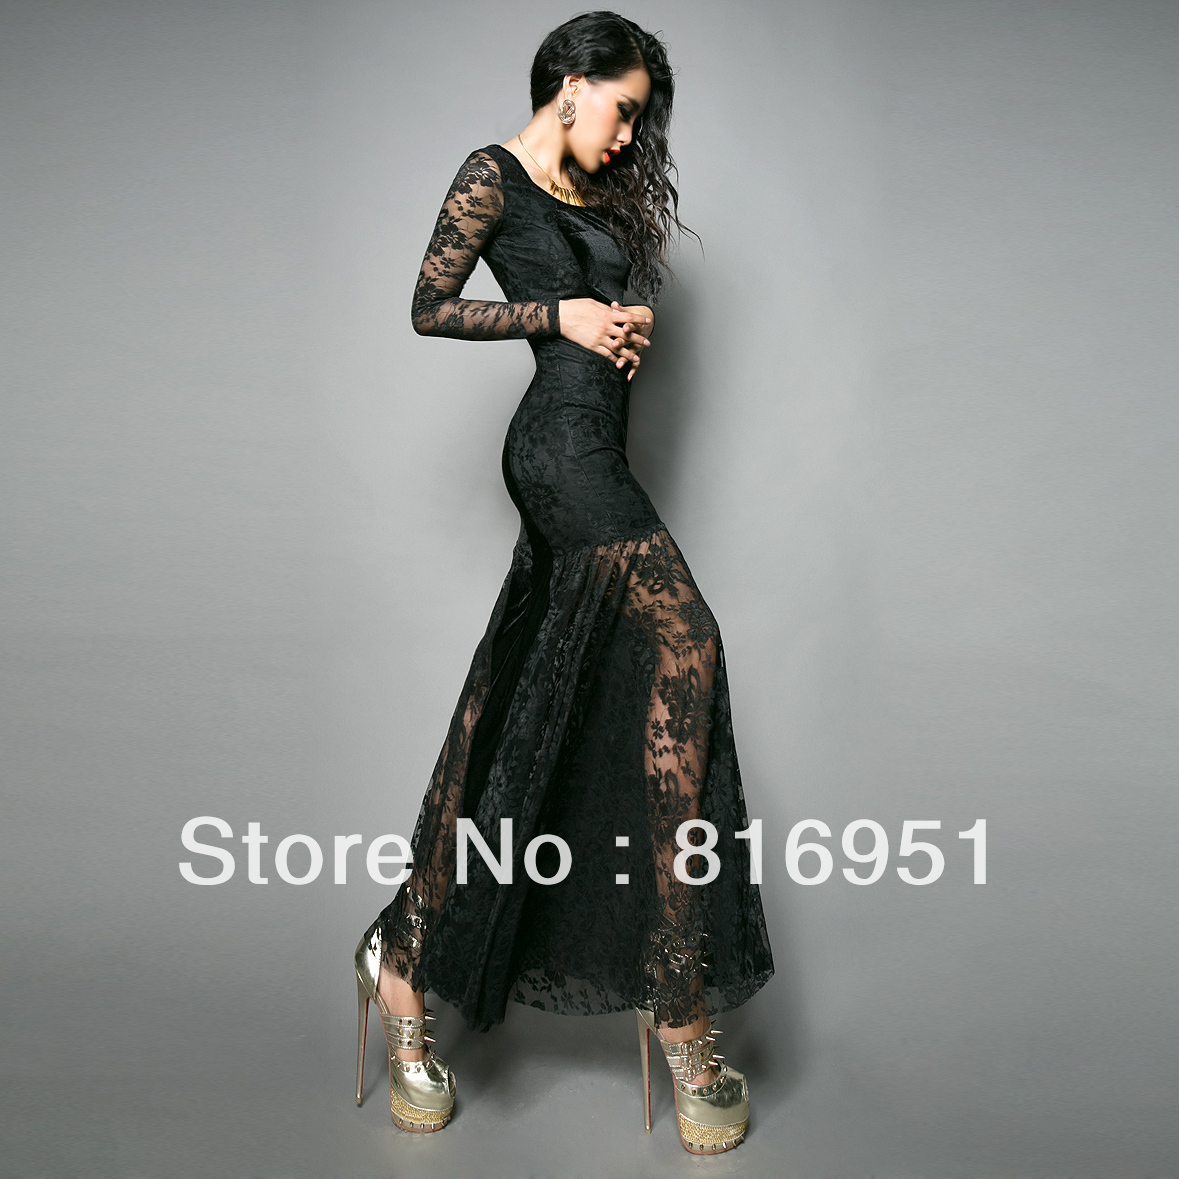 Long Sleeved Full Length Evening Dresses & Always In Fashion For All Occasions